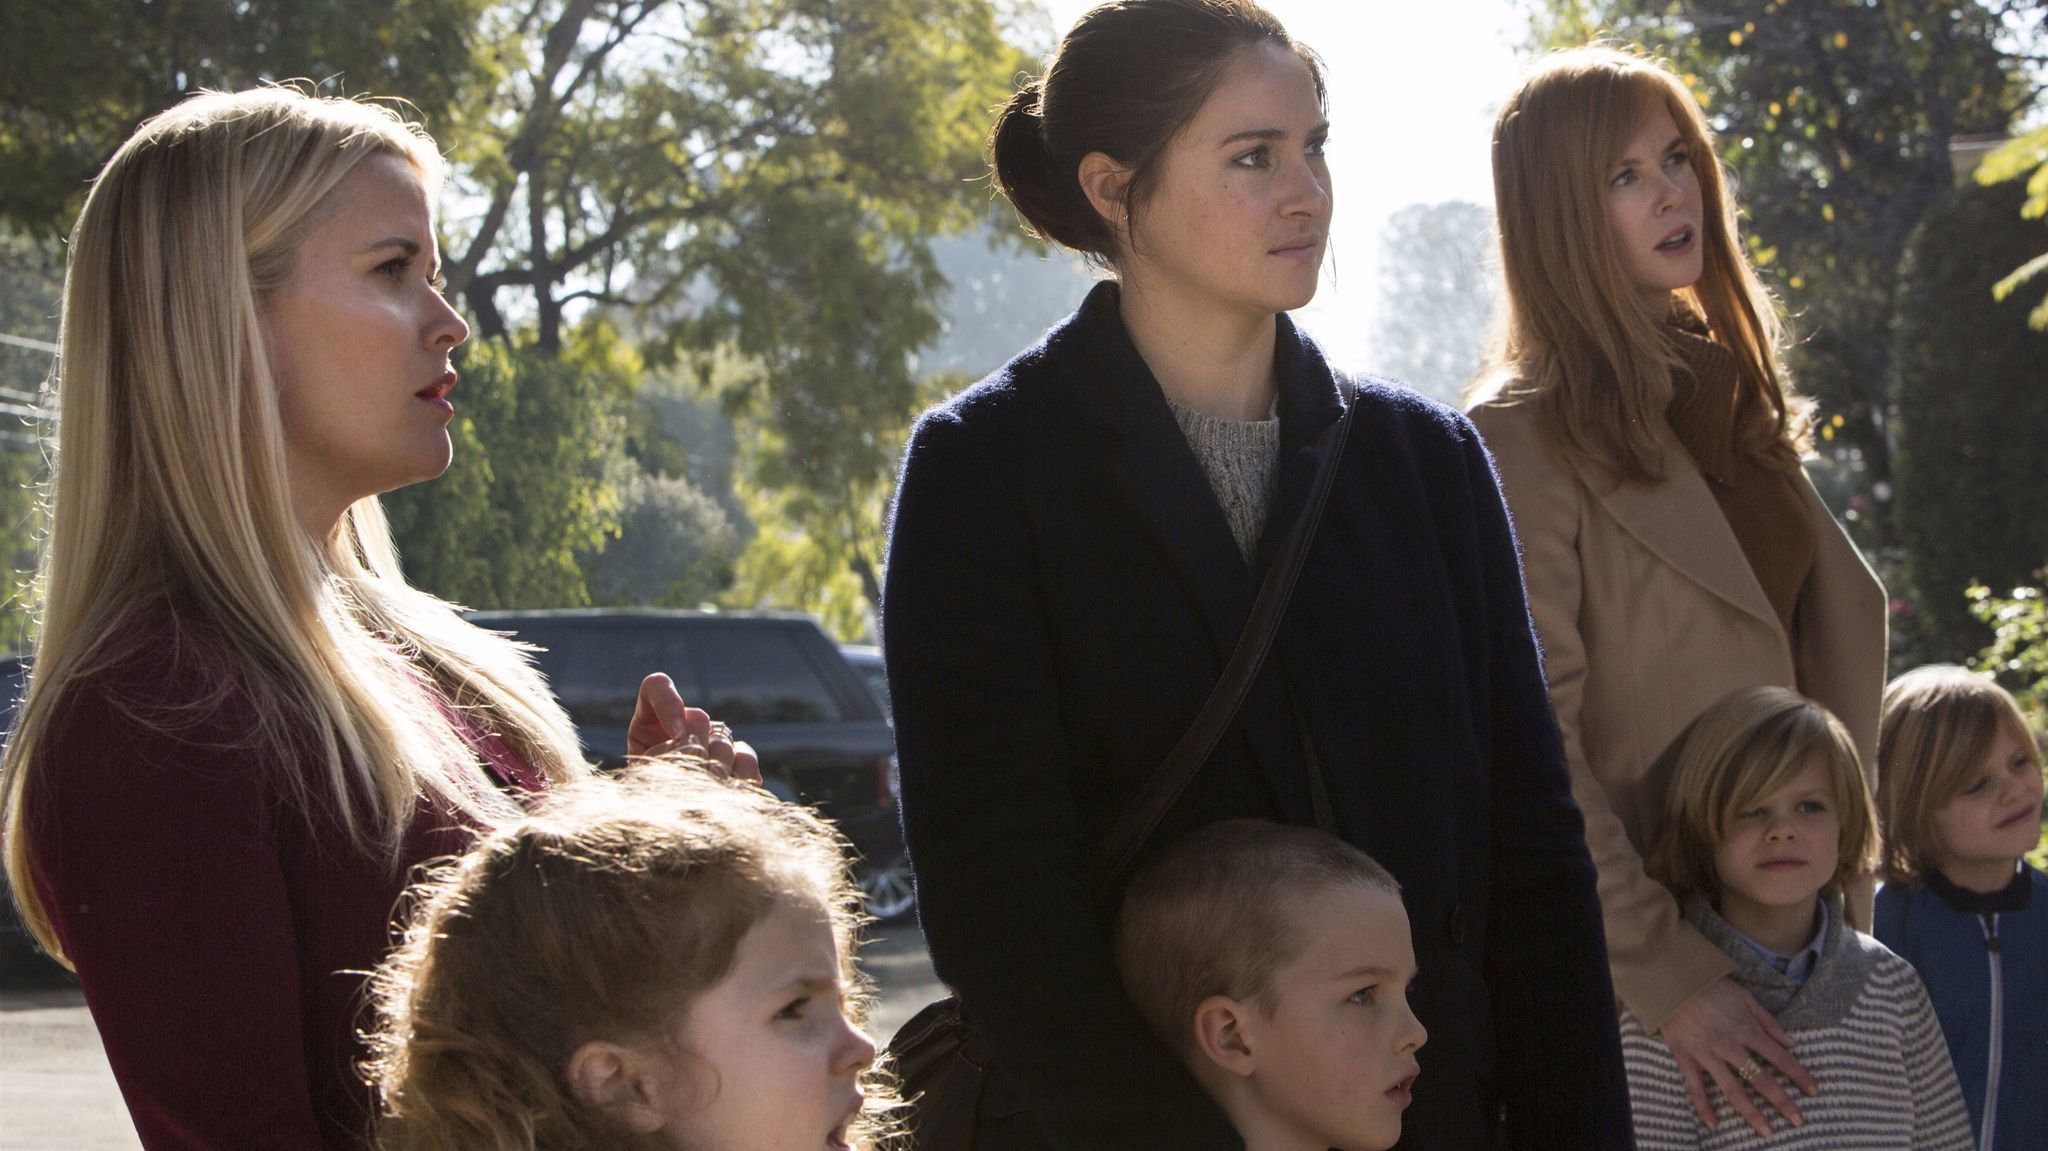 Reese Witherspoon, Darby Camp, Shailene Woodley, Iain Armitage, Nicole Kidman, Cameron Crovetti, Nicolas Crovetti in a scene from HBO's